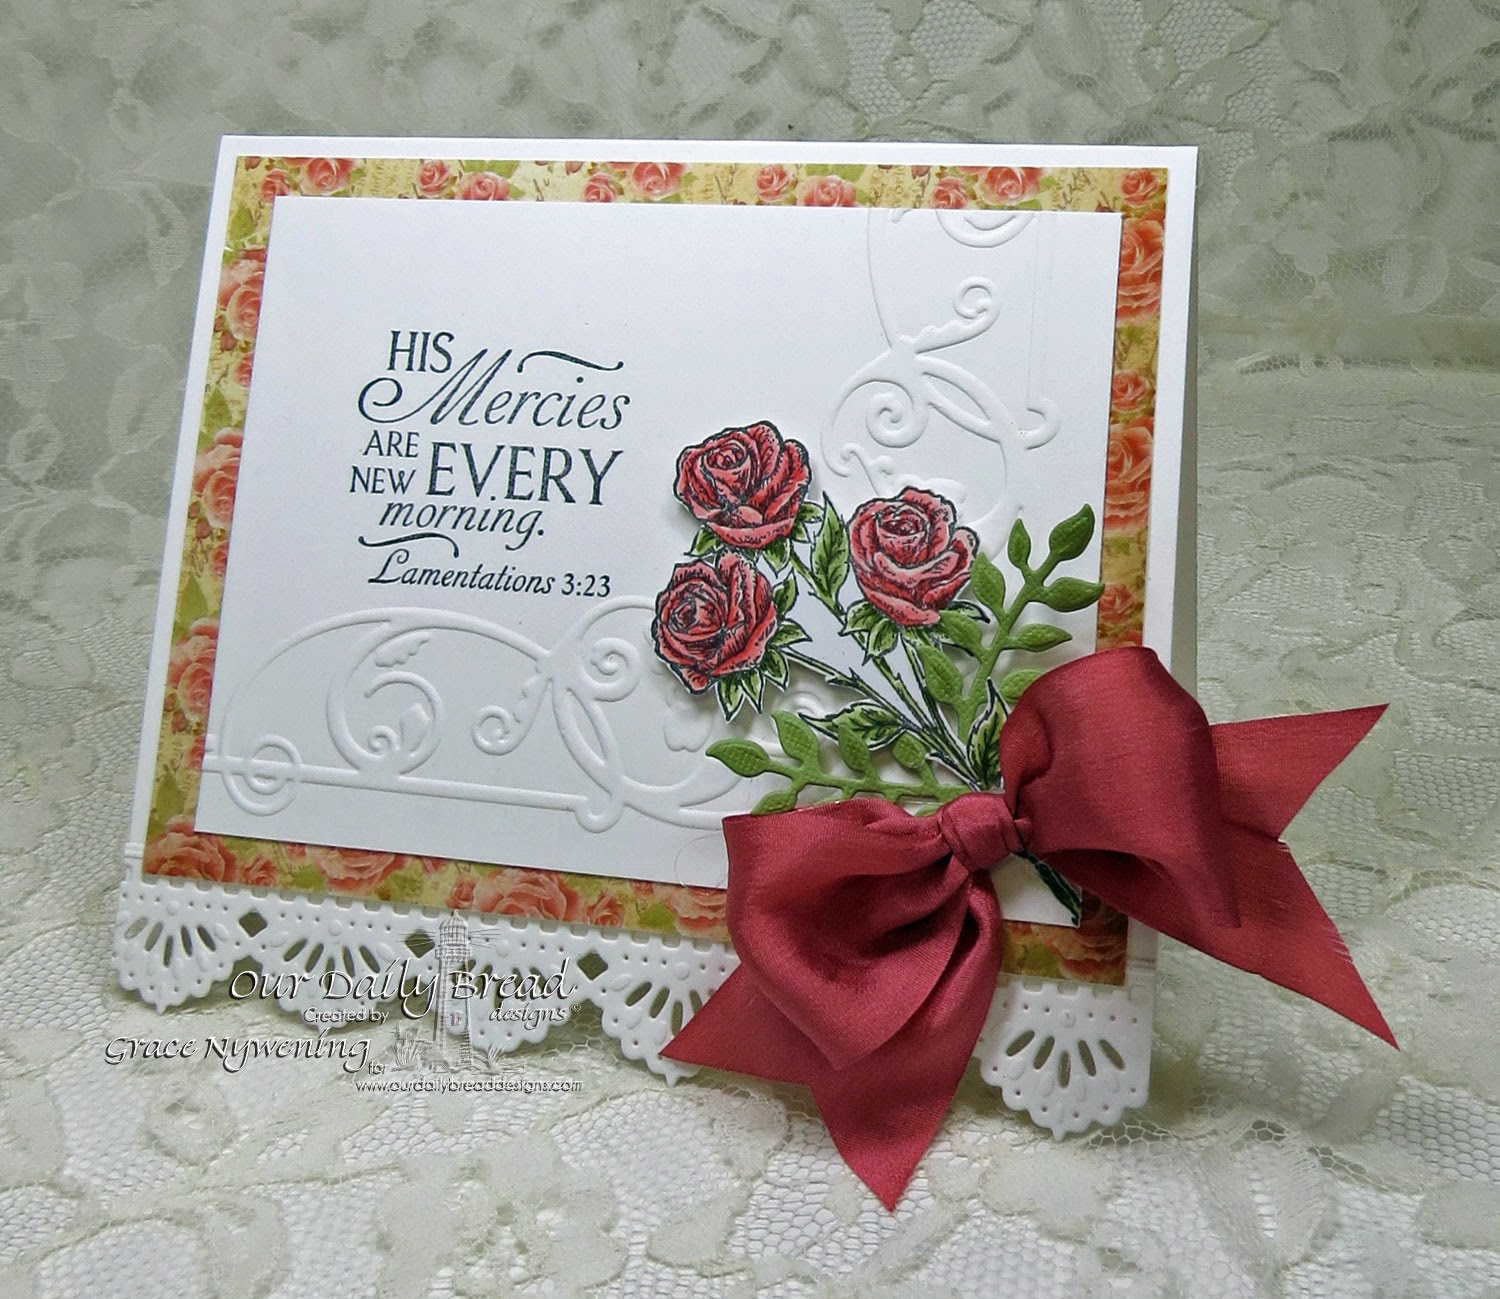 ODBD stamps: Rose Mini, Glory, ODBD Fancy Foliage Die, ODBD Beautiful Border die,designed by Grace Nywening